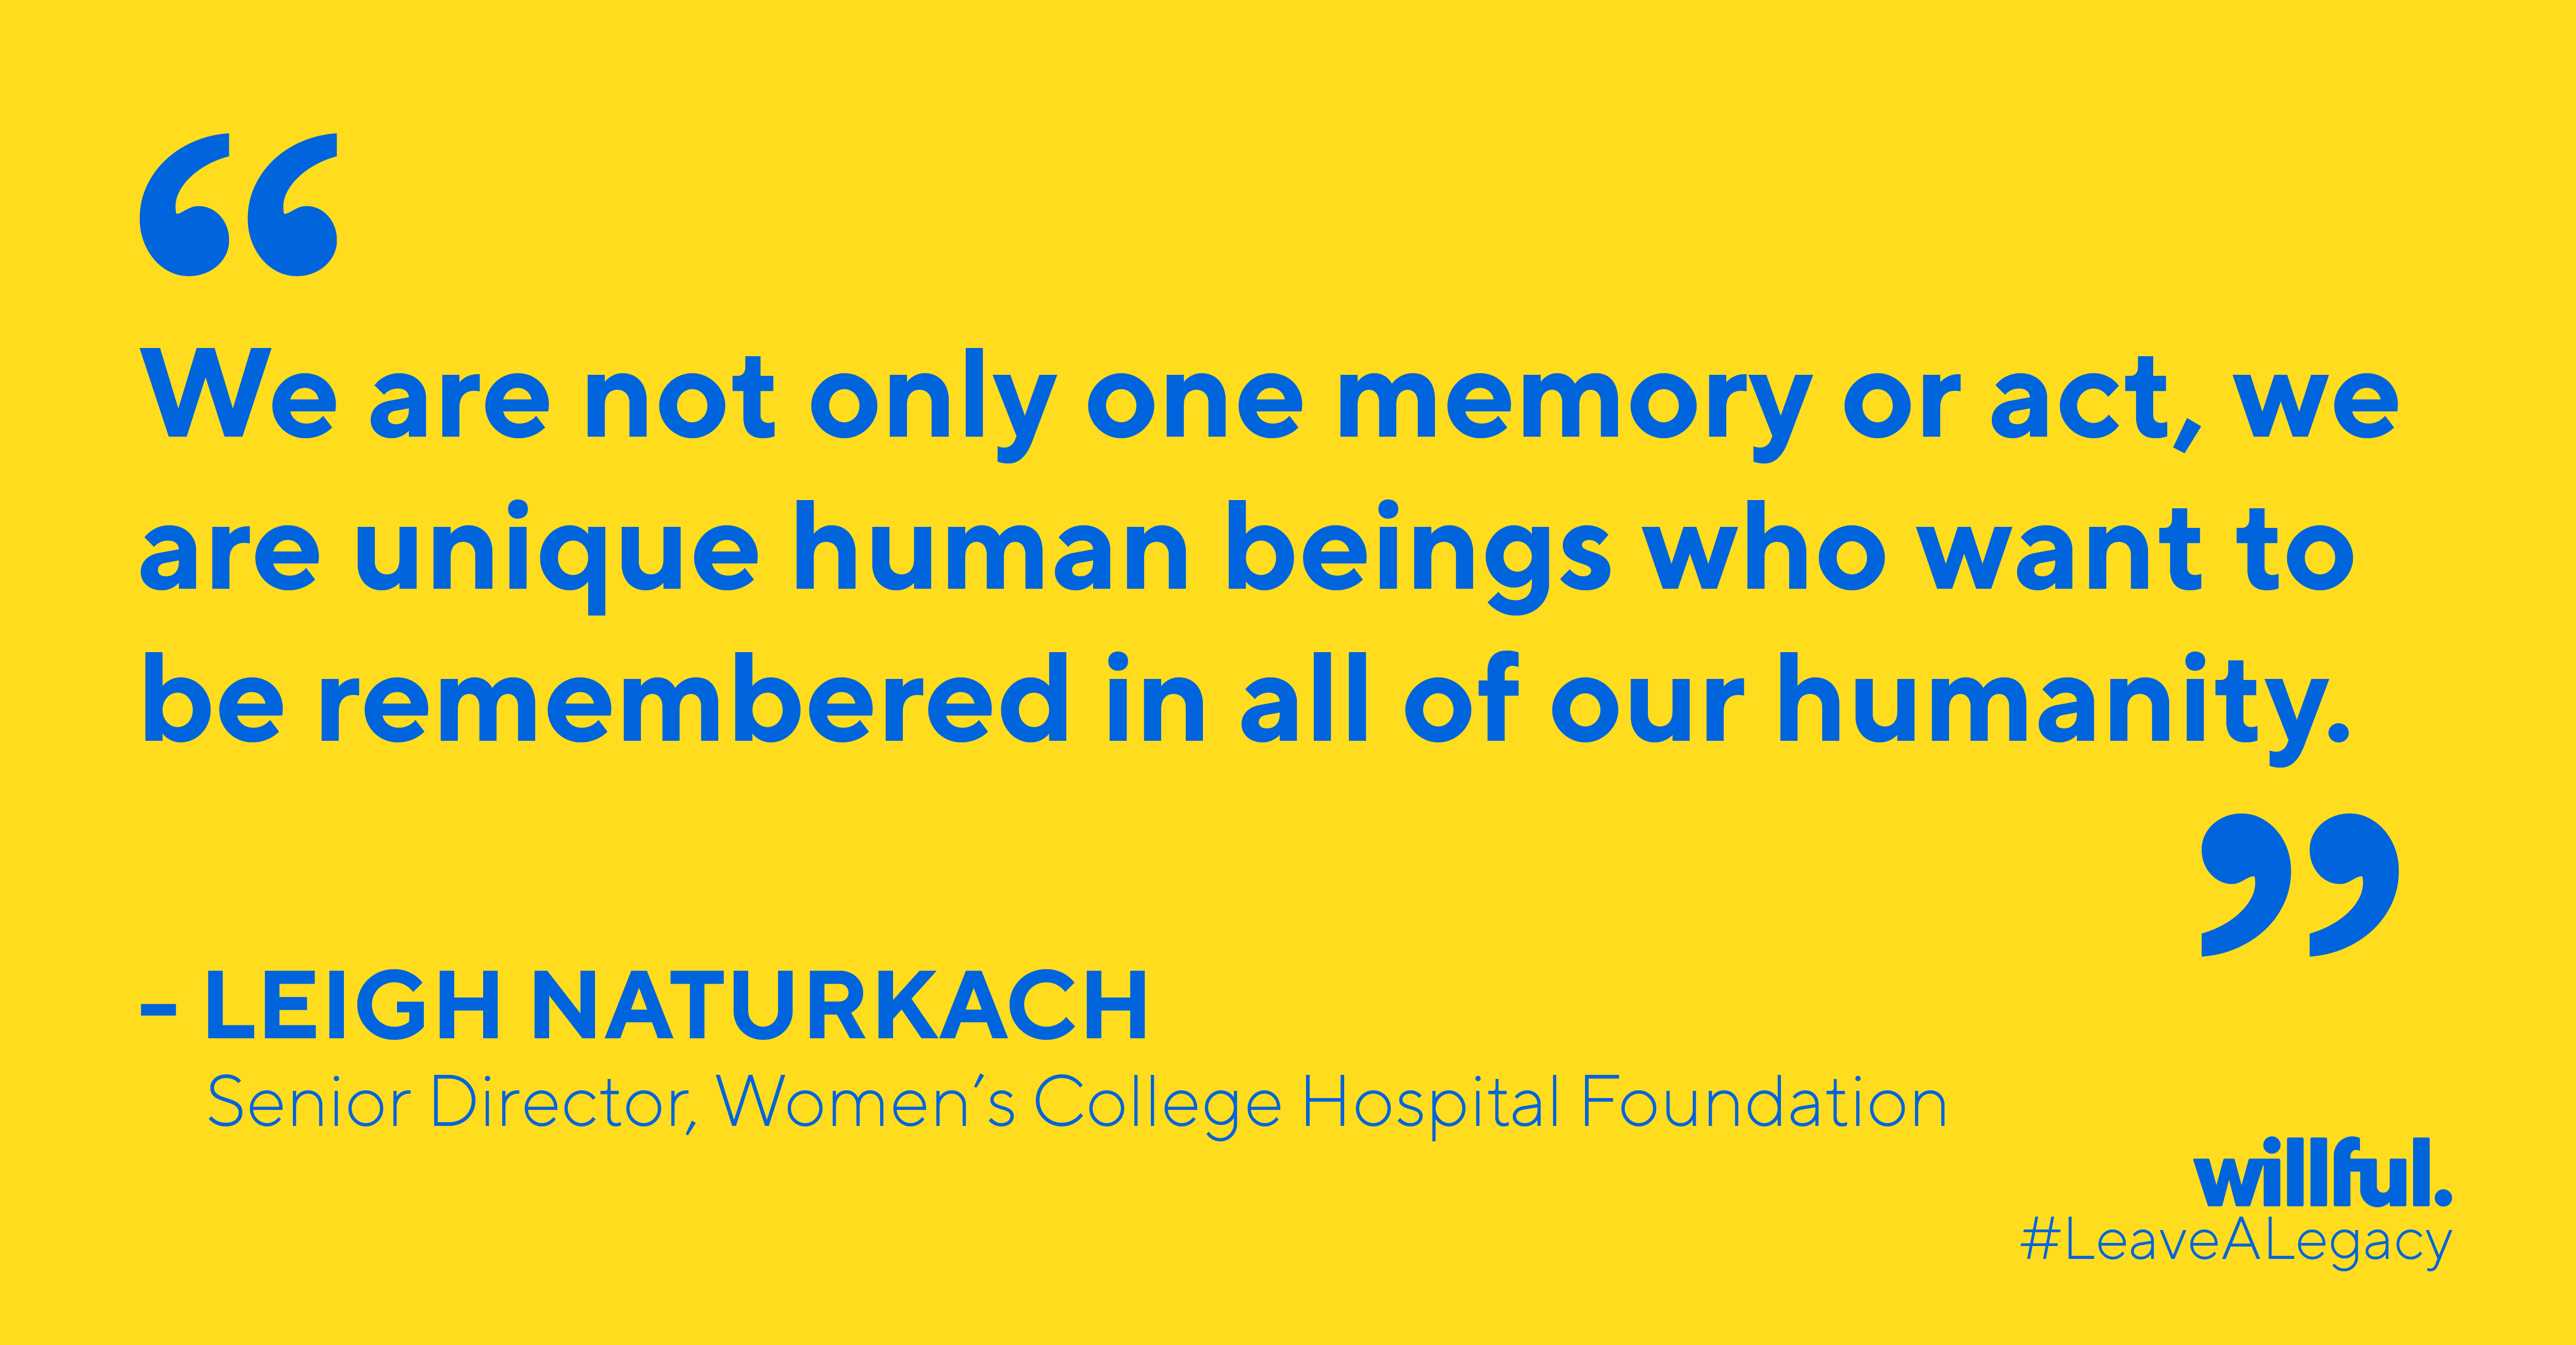 """We are not only one memory or act, we are unique human beings who want to be remembered in all our humanity"" - Leigh Naturkach, Senior Director, Women's College Hospital Foundation"